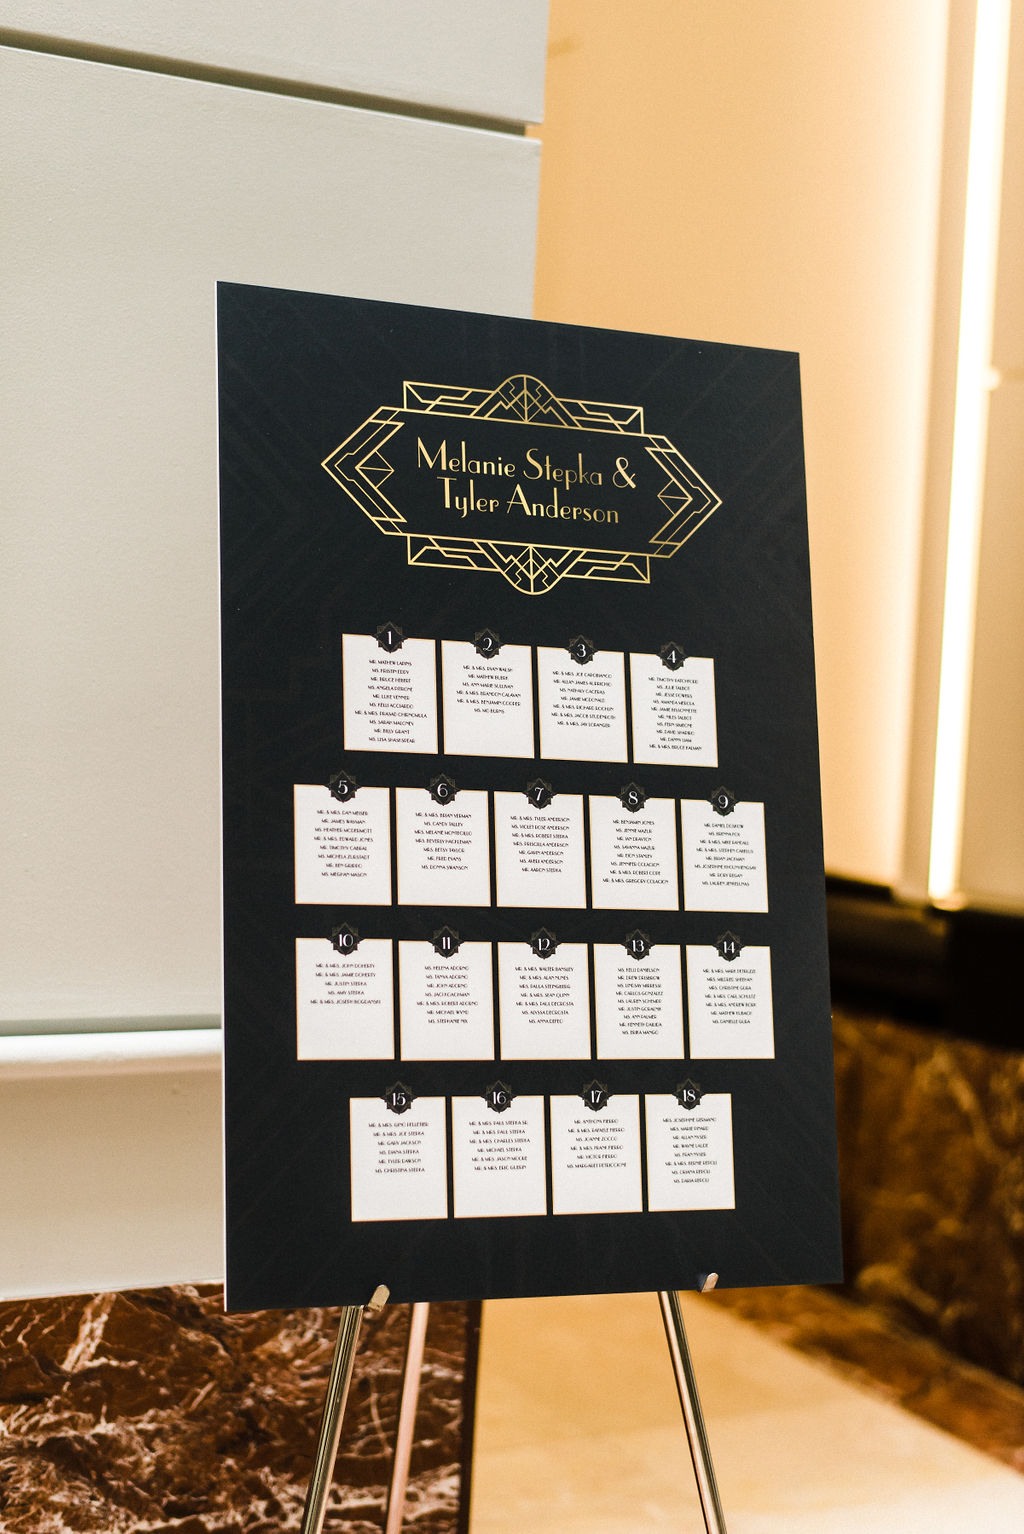 Great Gatsby themed wedding chart for Melanie & Tyler Anderson's wedding - Pearl Weddings & Events